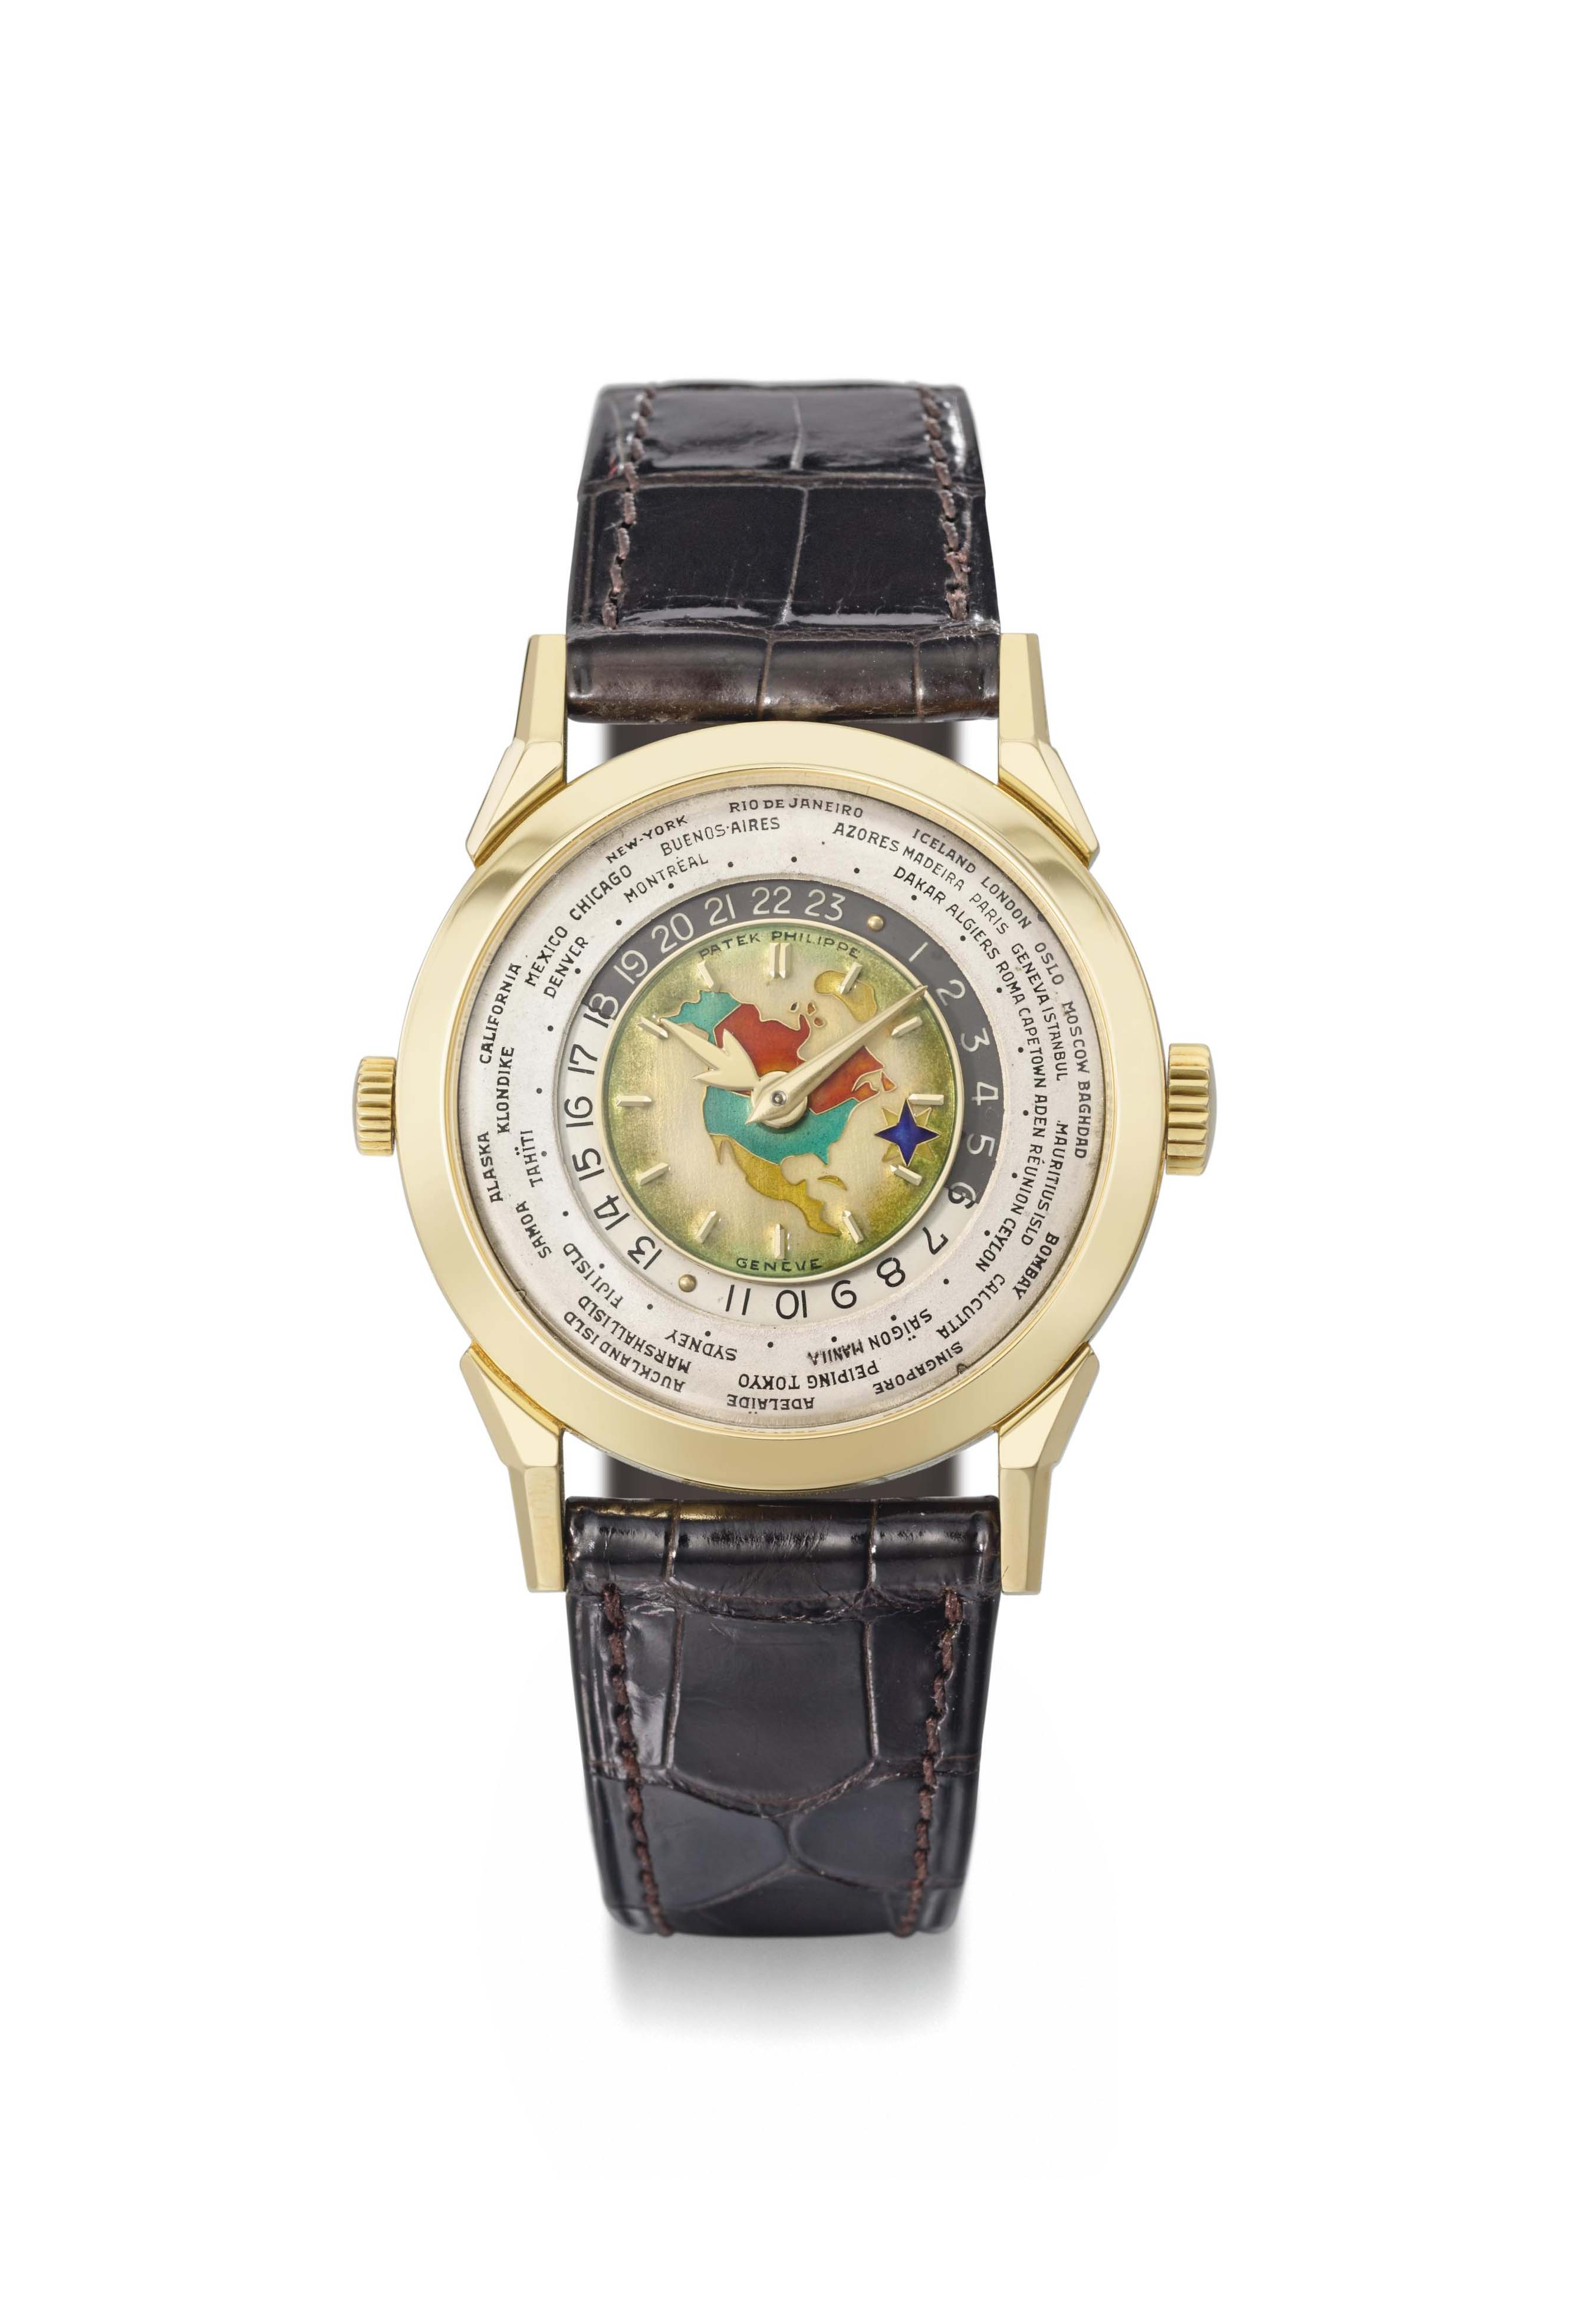 Patek Philippe. An exceptionally fine, rare and important 18K gold two crown world time wristwatch with 24 hour indication and cloisonné enamel dial depicting the North American continent